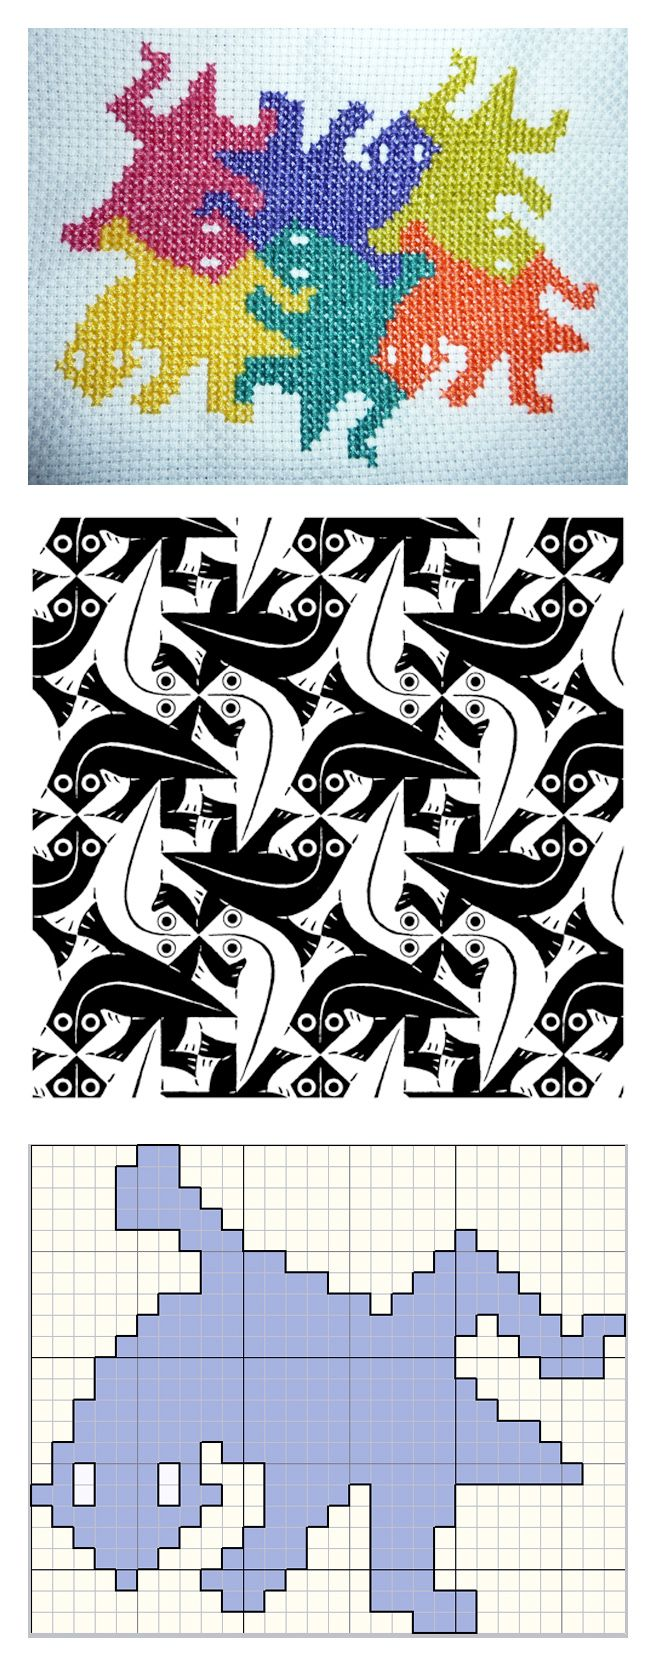 Escher lizards - Dorothea - cross stitch pattern